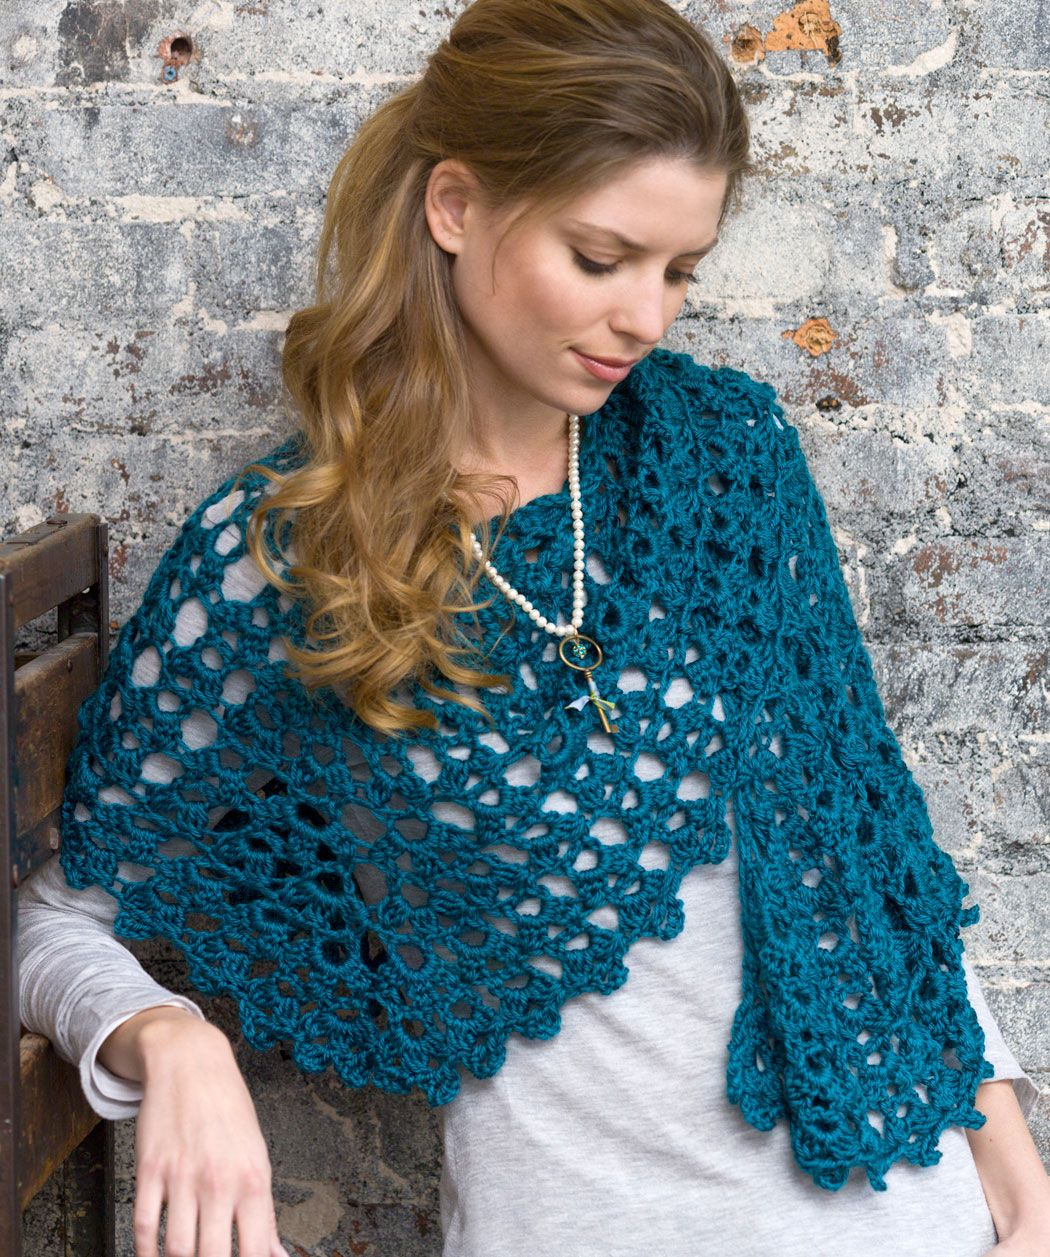 Free Crochet Shawl/Wrap Patterns. on Pinterest | Shawl ...